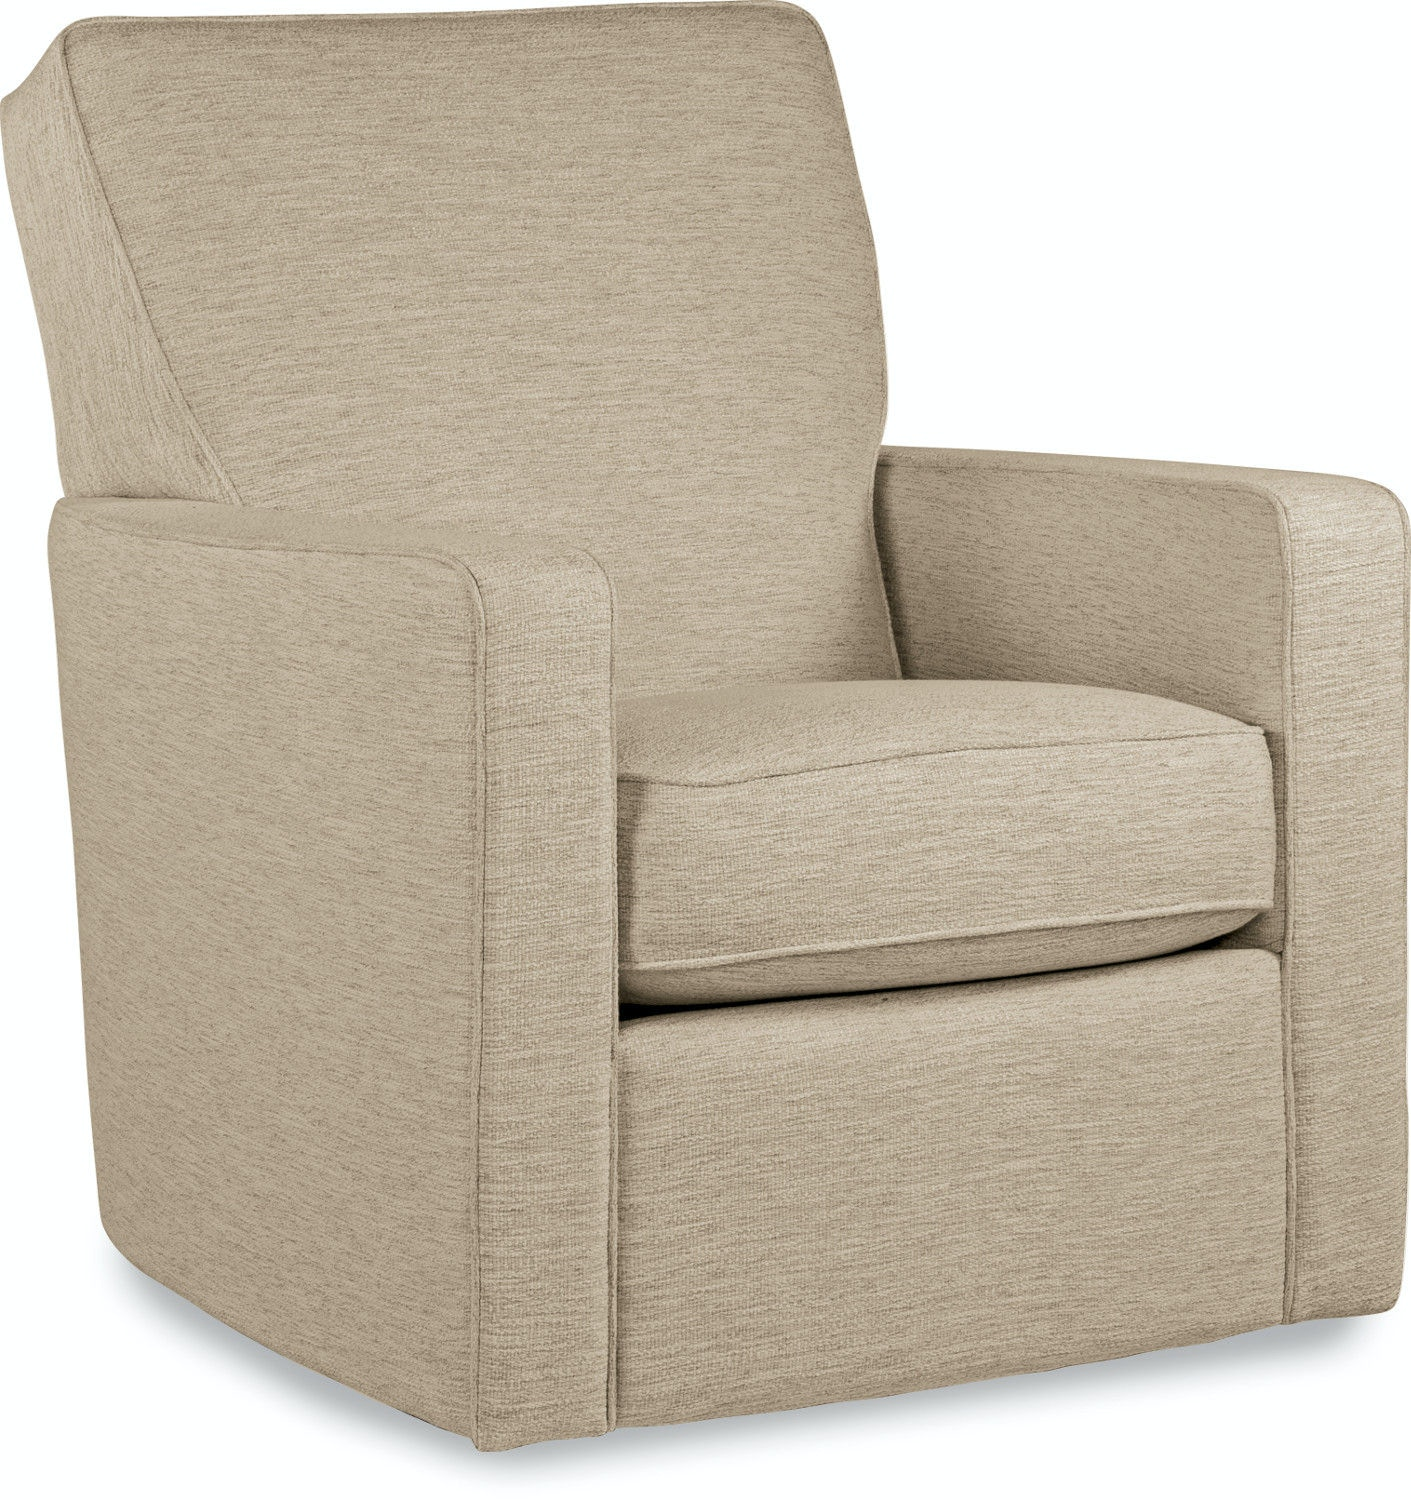 La-Z-Boy® Premier Swivel Occasional Chair 215479 ...  sc 1 st  Lynch Furniture & Living Room La-Z-Boy® Premier Swivel Occasional Chair 215479 - Lynch ...